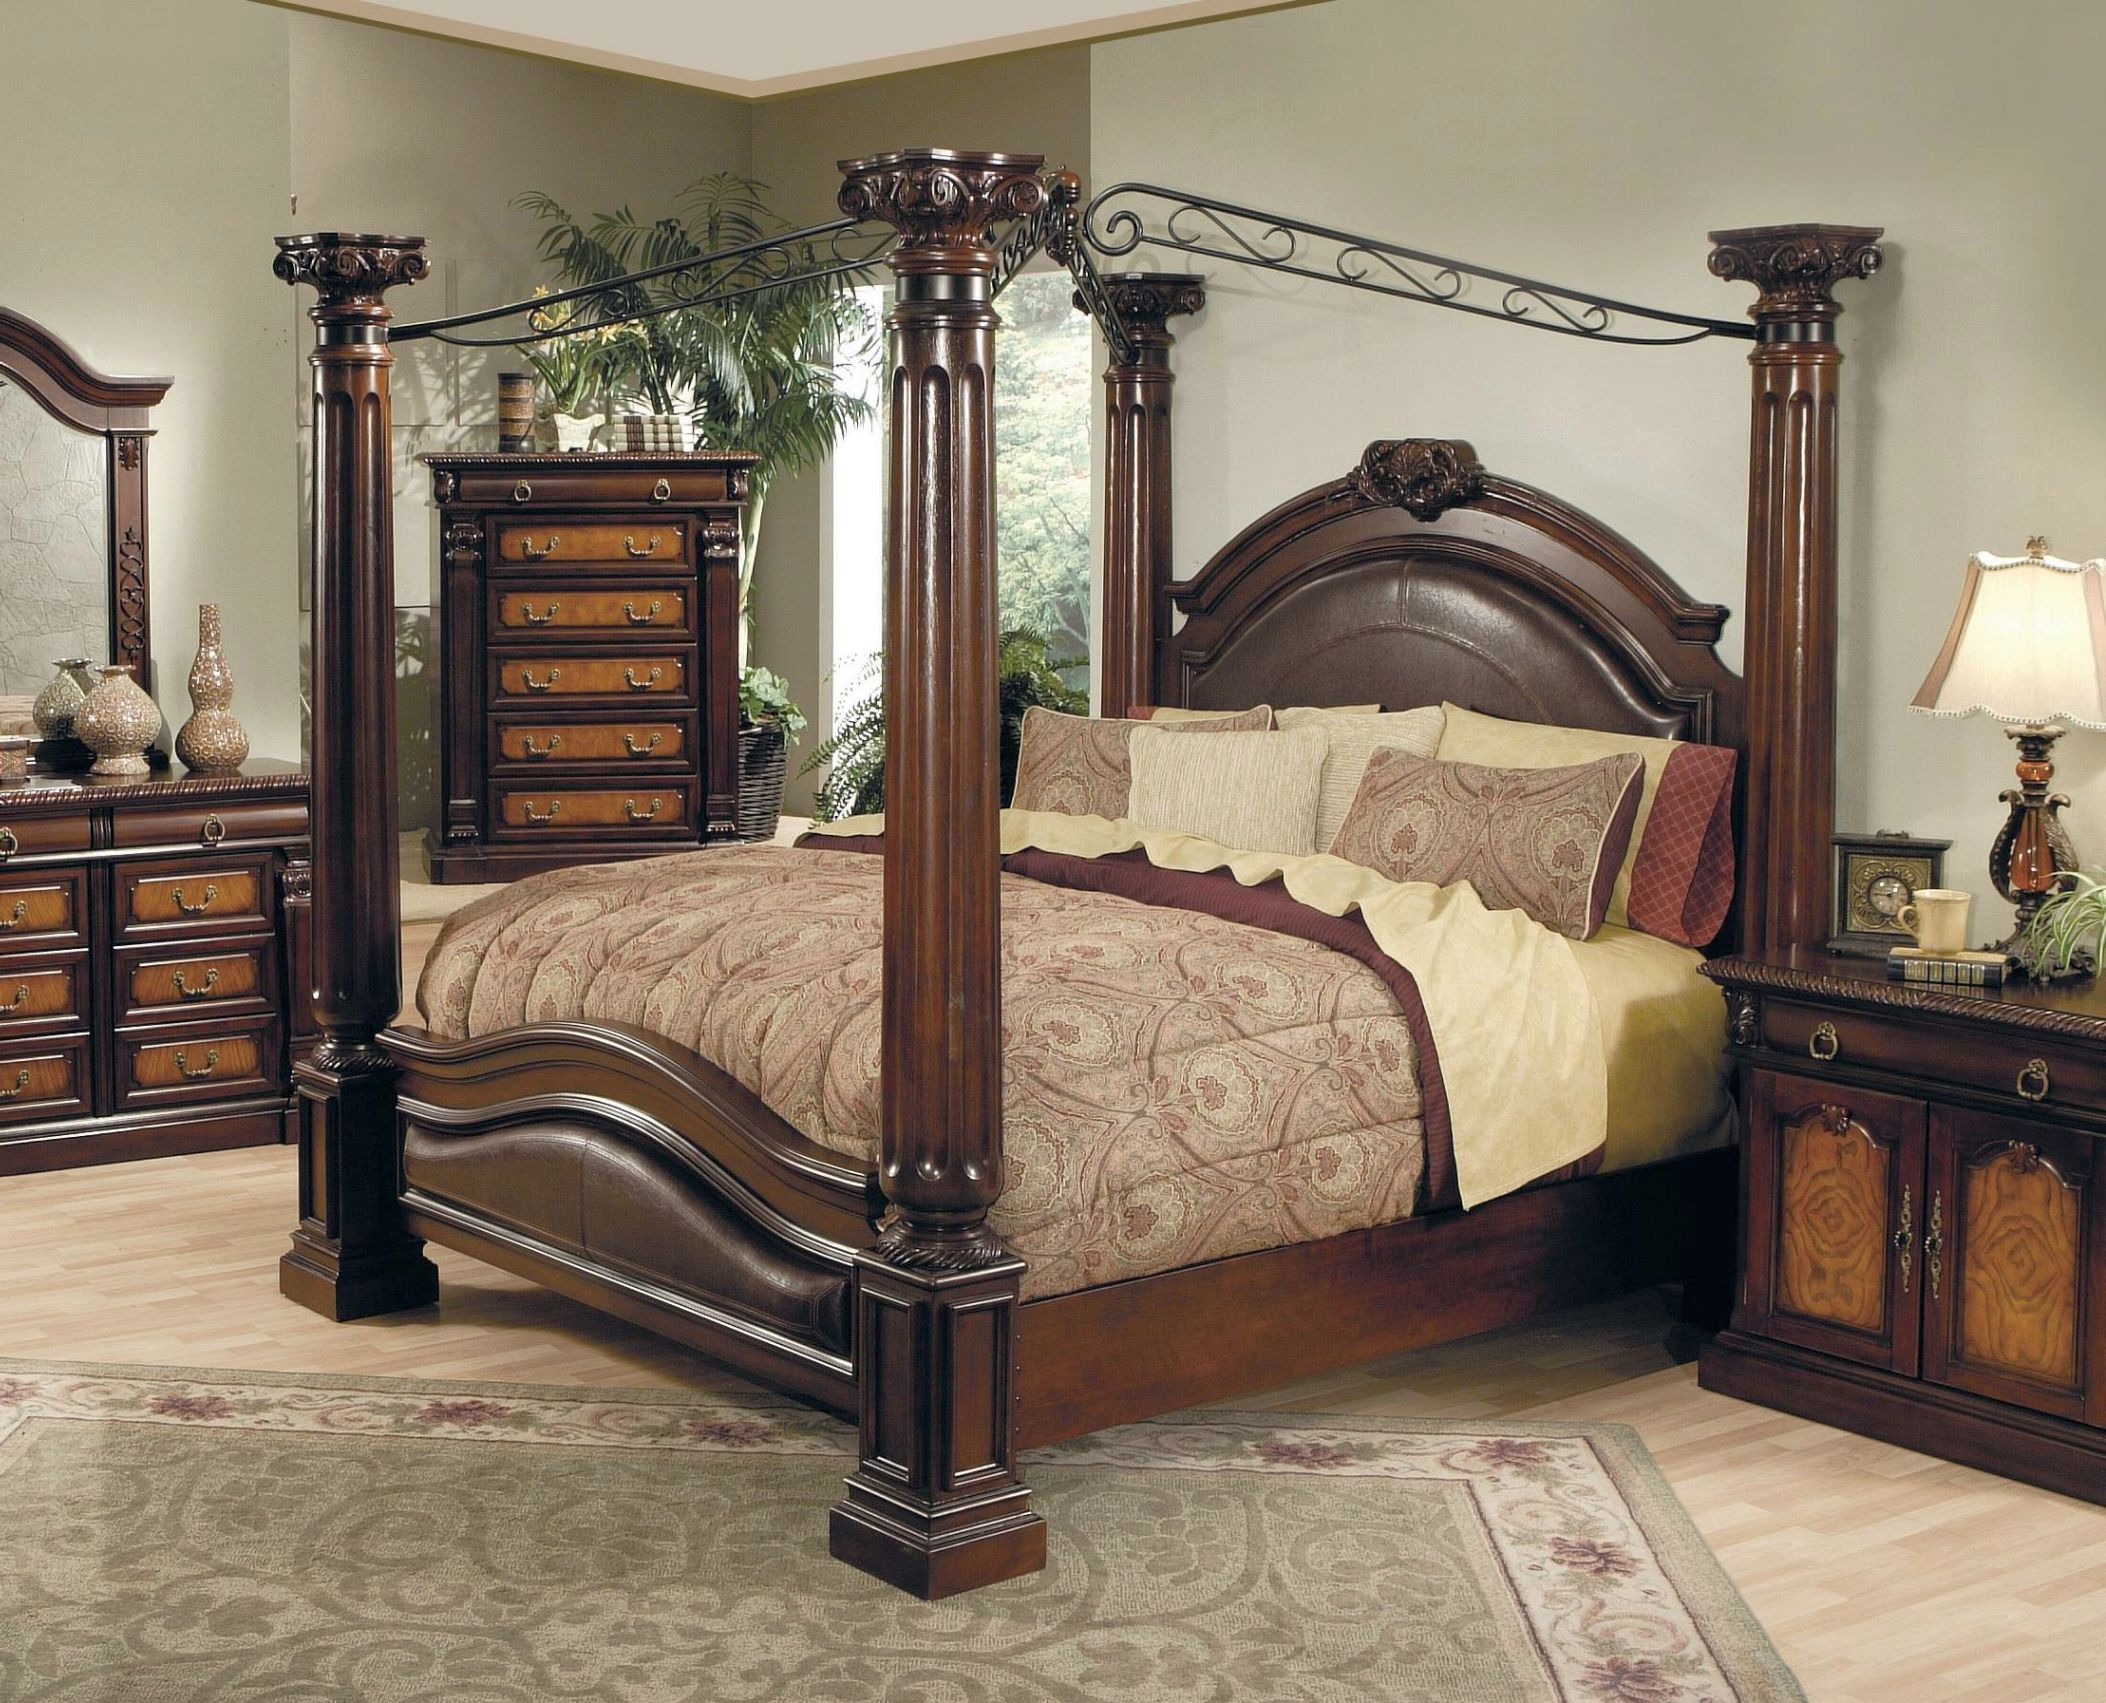 Stunning view of various exotic canopy bed designs Beautiful canopy beds